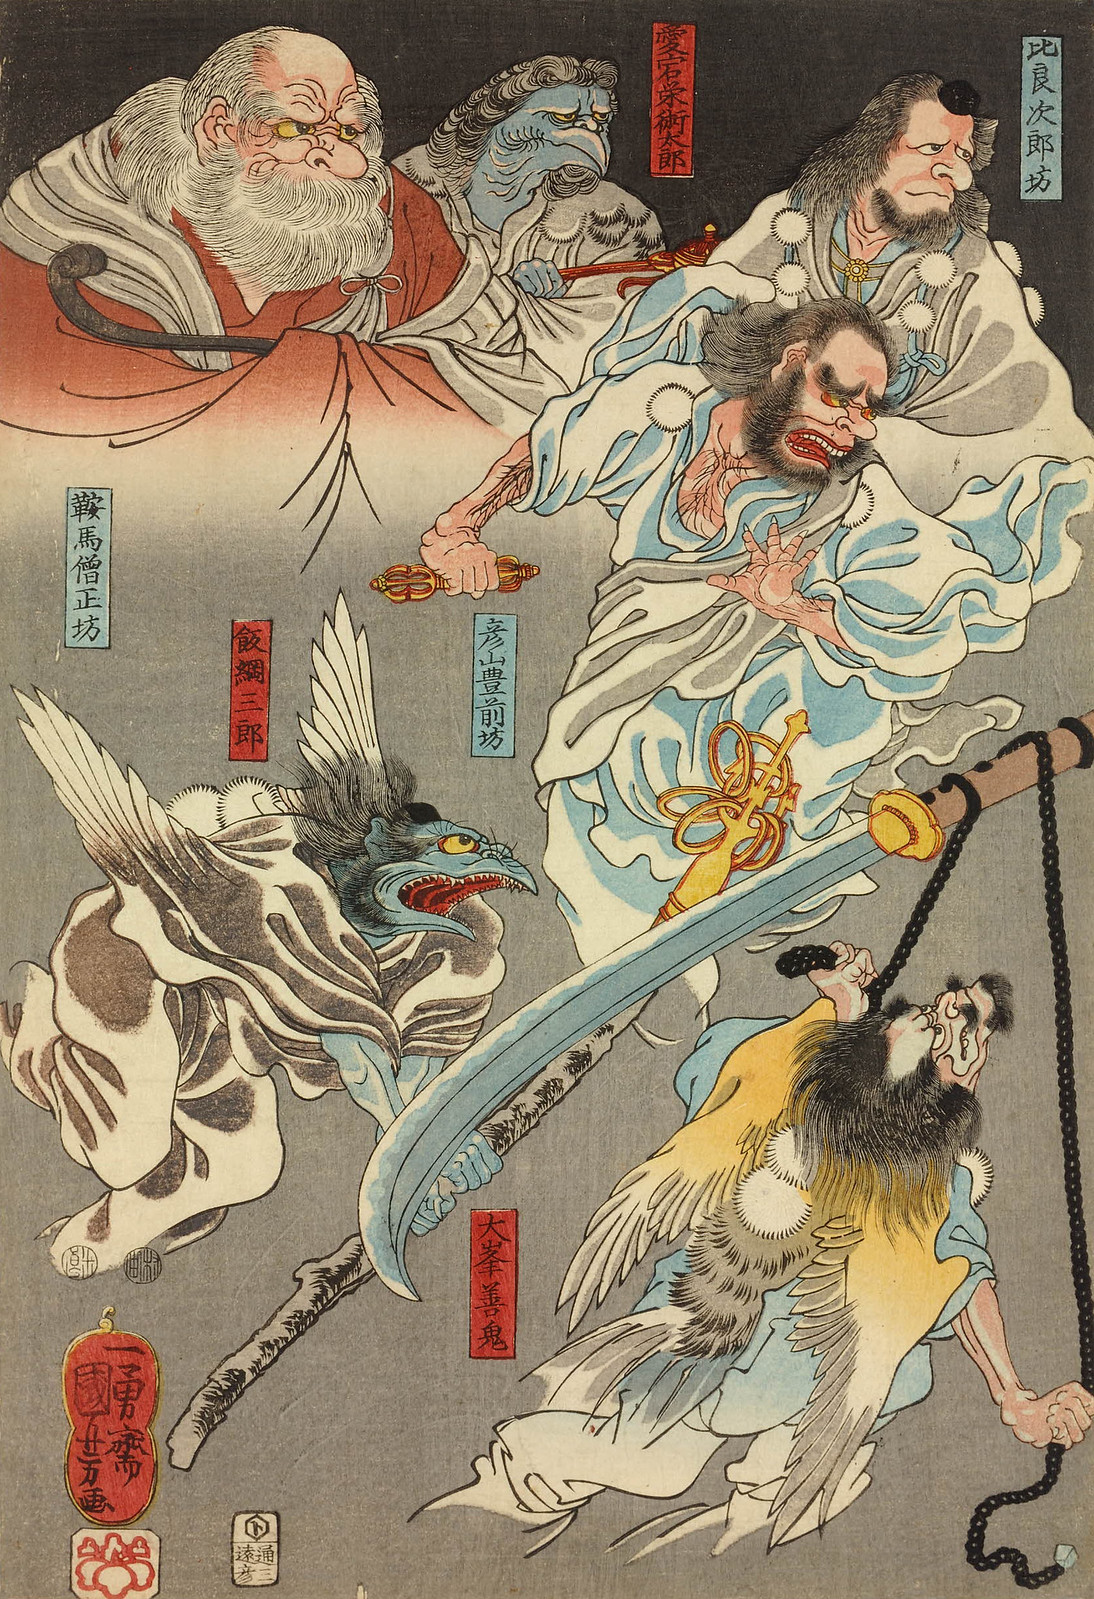 Utagawa Kuniyoshi - Ushiwakamaru (Yoshitsune) Fighting Benkei with the Help of the Tengu, 1847-50 (middle panel)